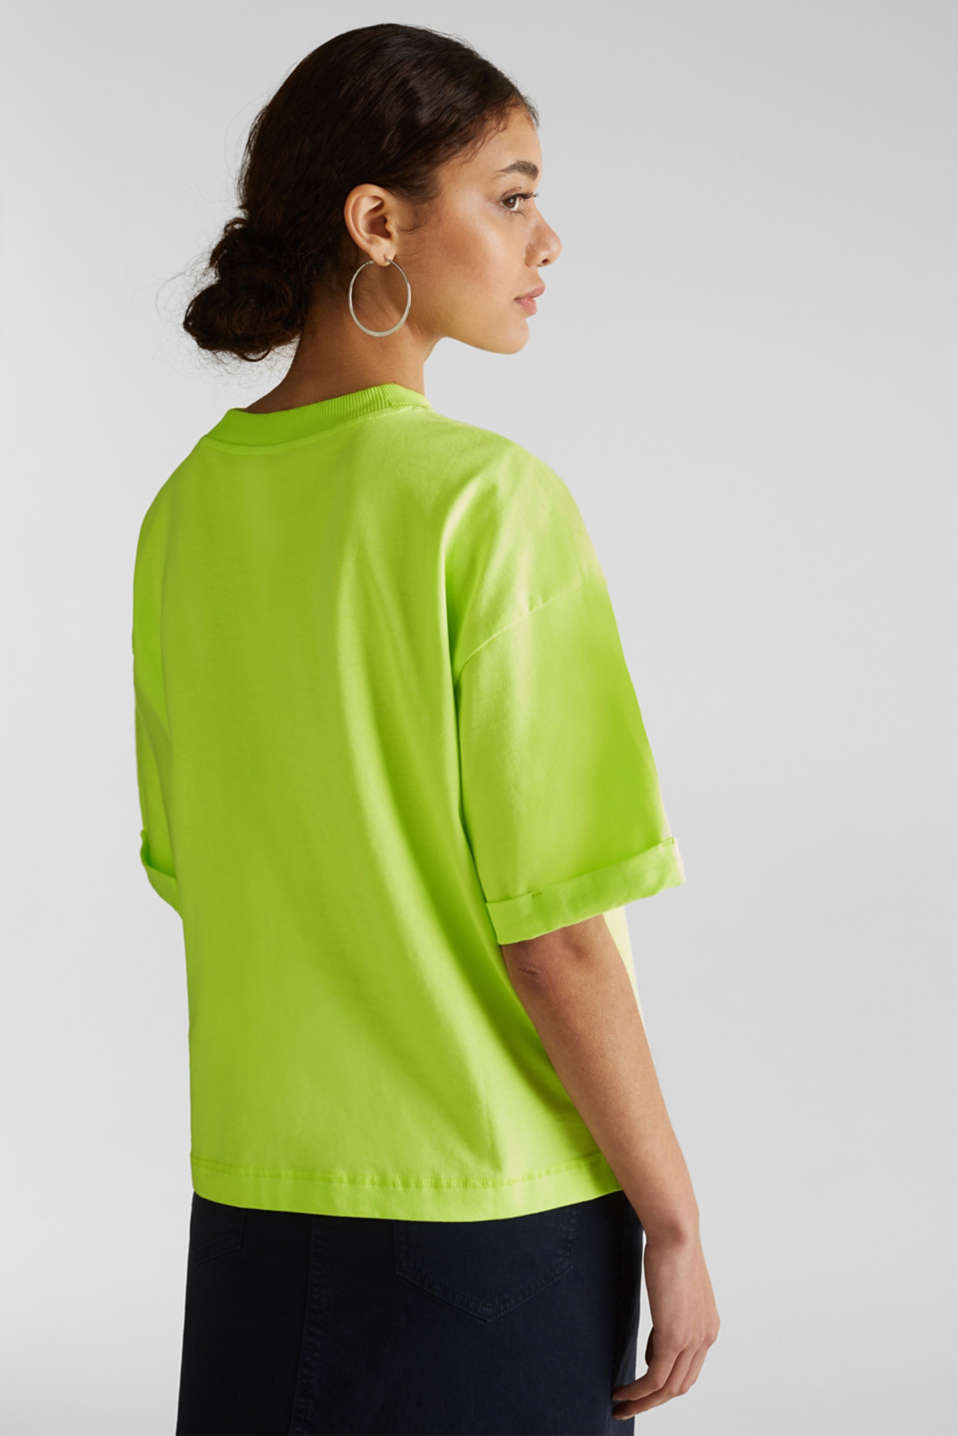 NEON top with wide sleeves, 100% cotton, LIME YELLOW, detail image number 3